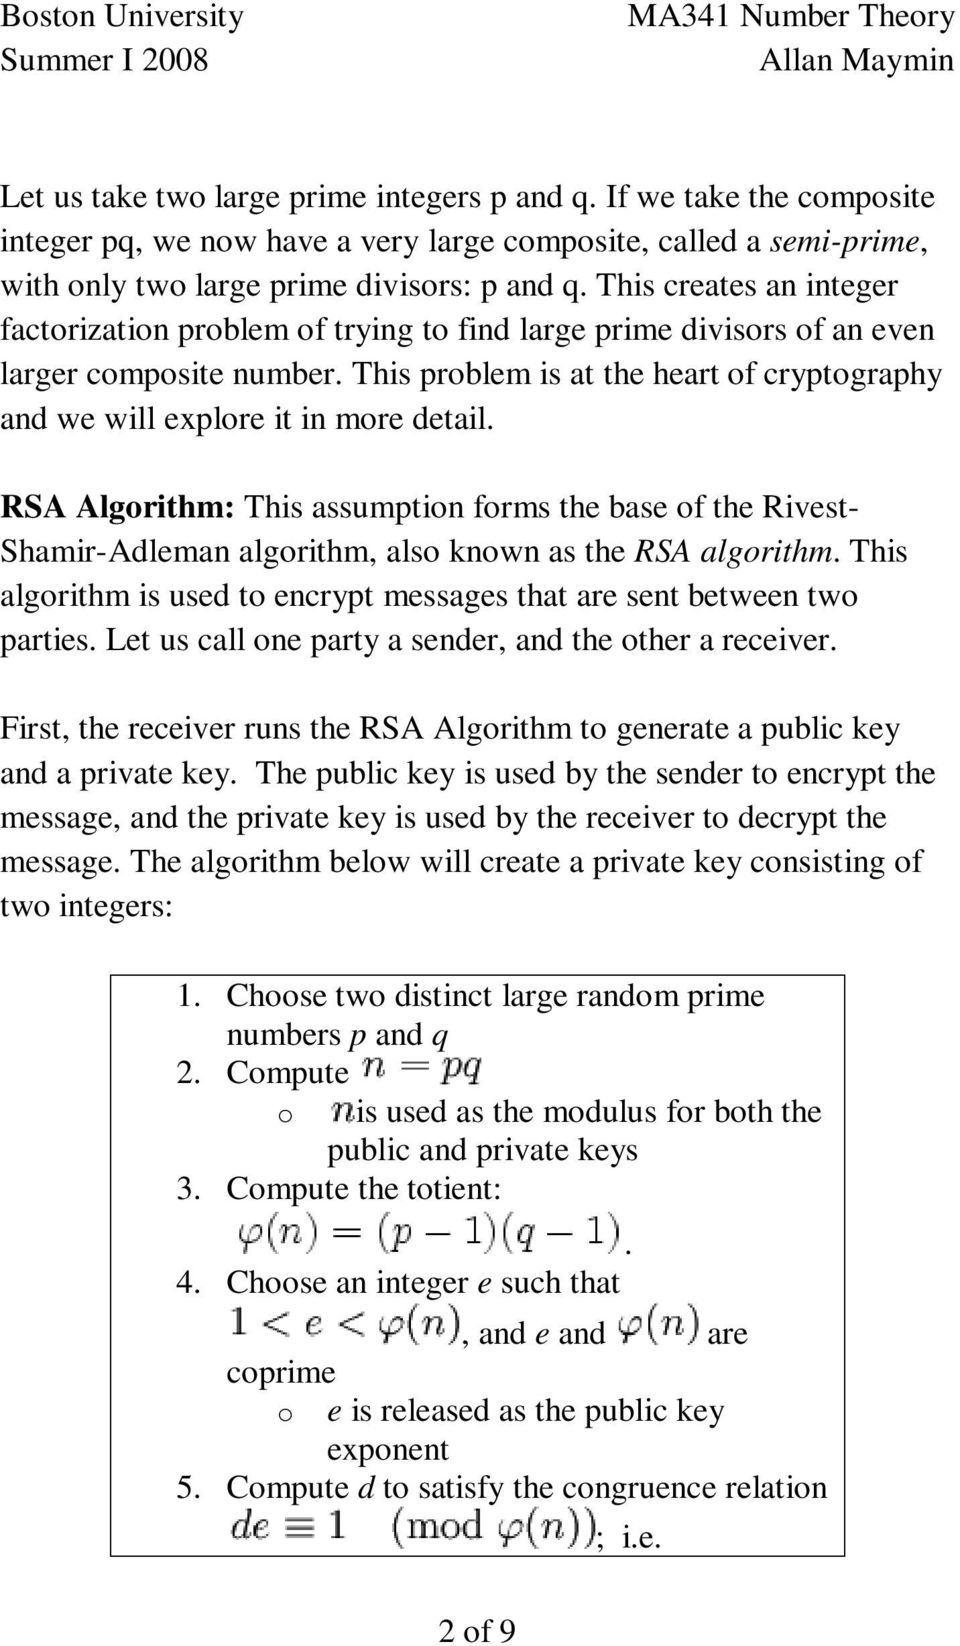 Algorithm: This assumption forms the base of the Rivest- Shamir-Adleman algorithm, also known as the RSA algorithm This algorithm is used to encrypt messages that are sent between two parties Let us